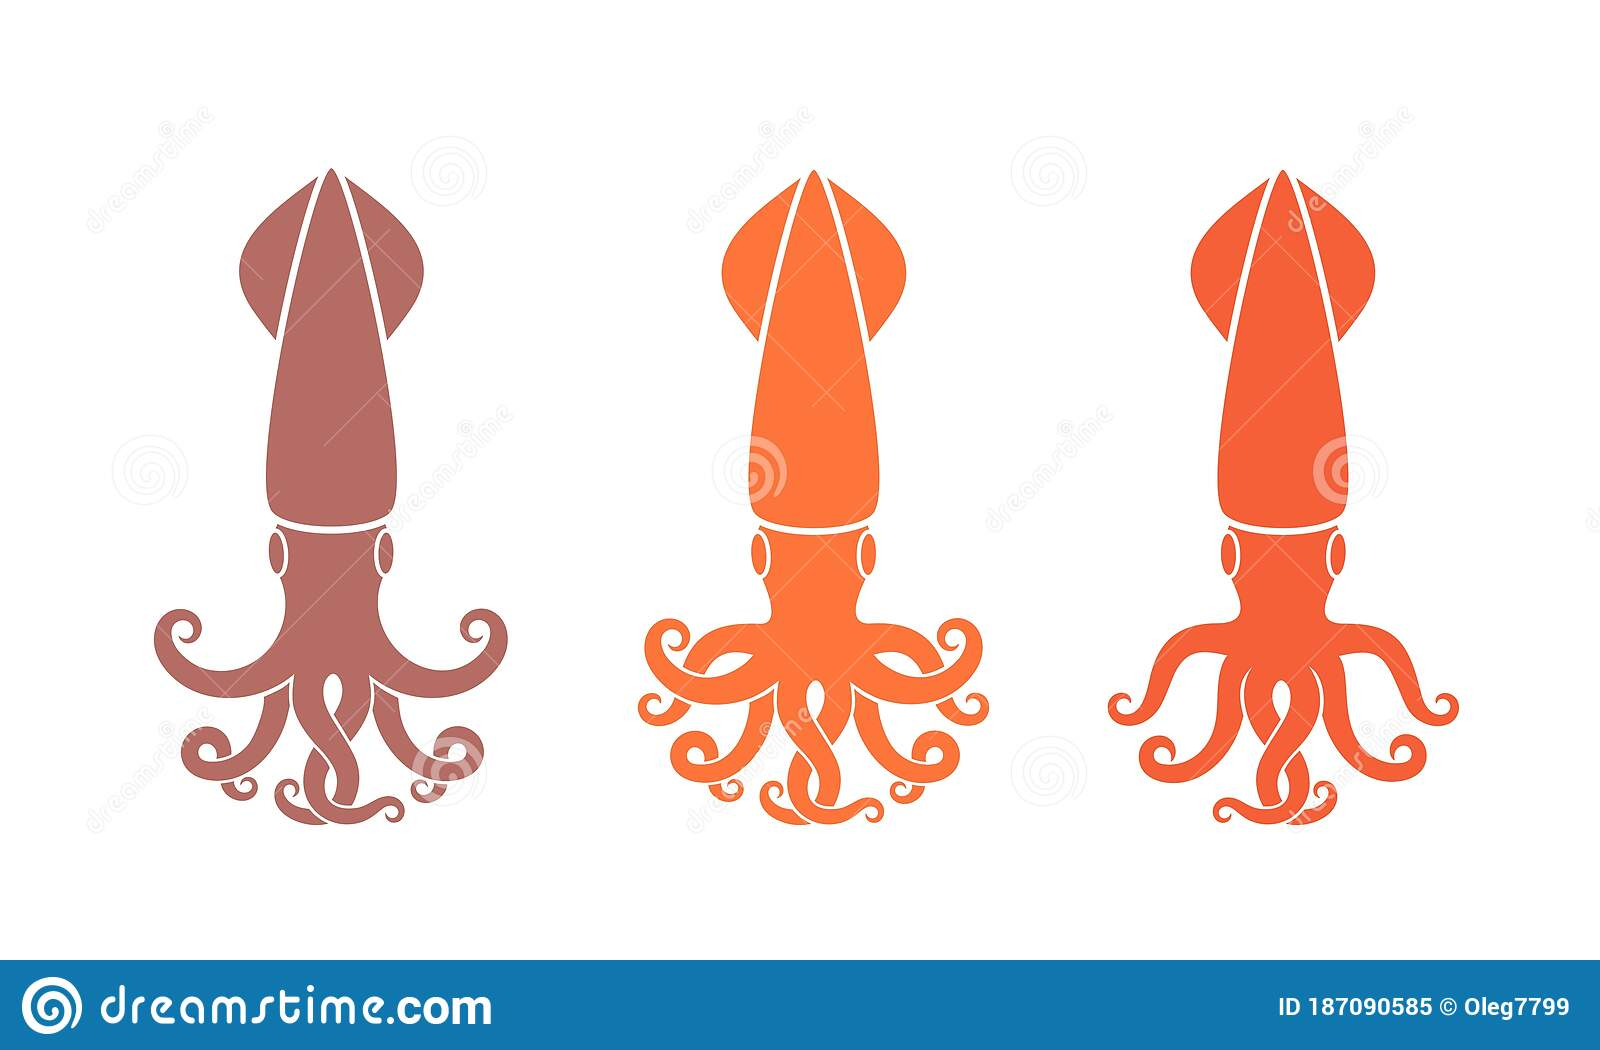 squid logo isolated squid on white background stock vector illustration of meat pharaoh 187090585 squid logo isolated squid on white background stock vector illustration of meat pharaoh 187090585